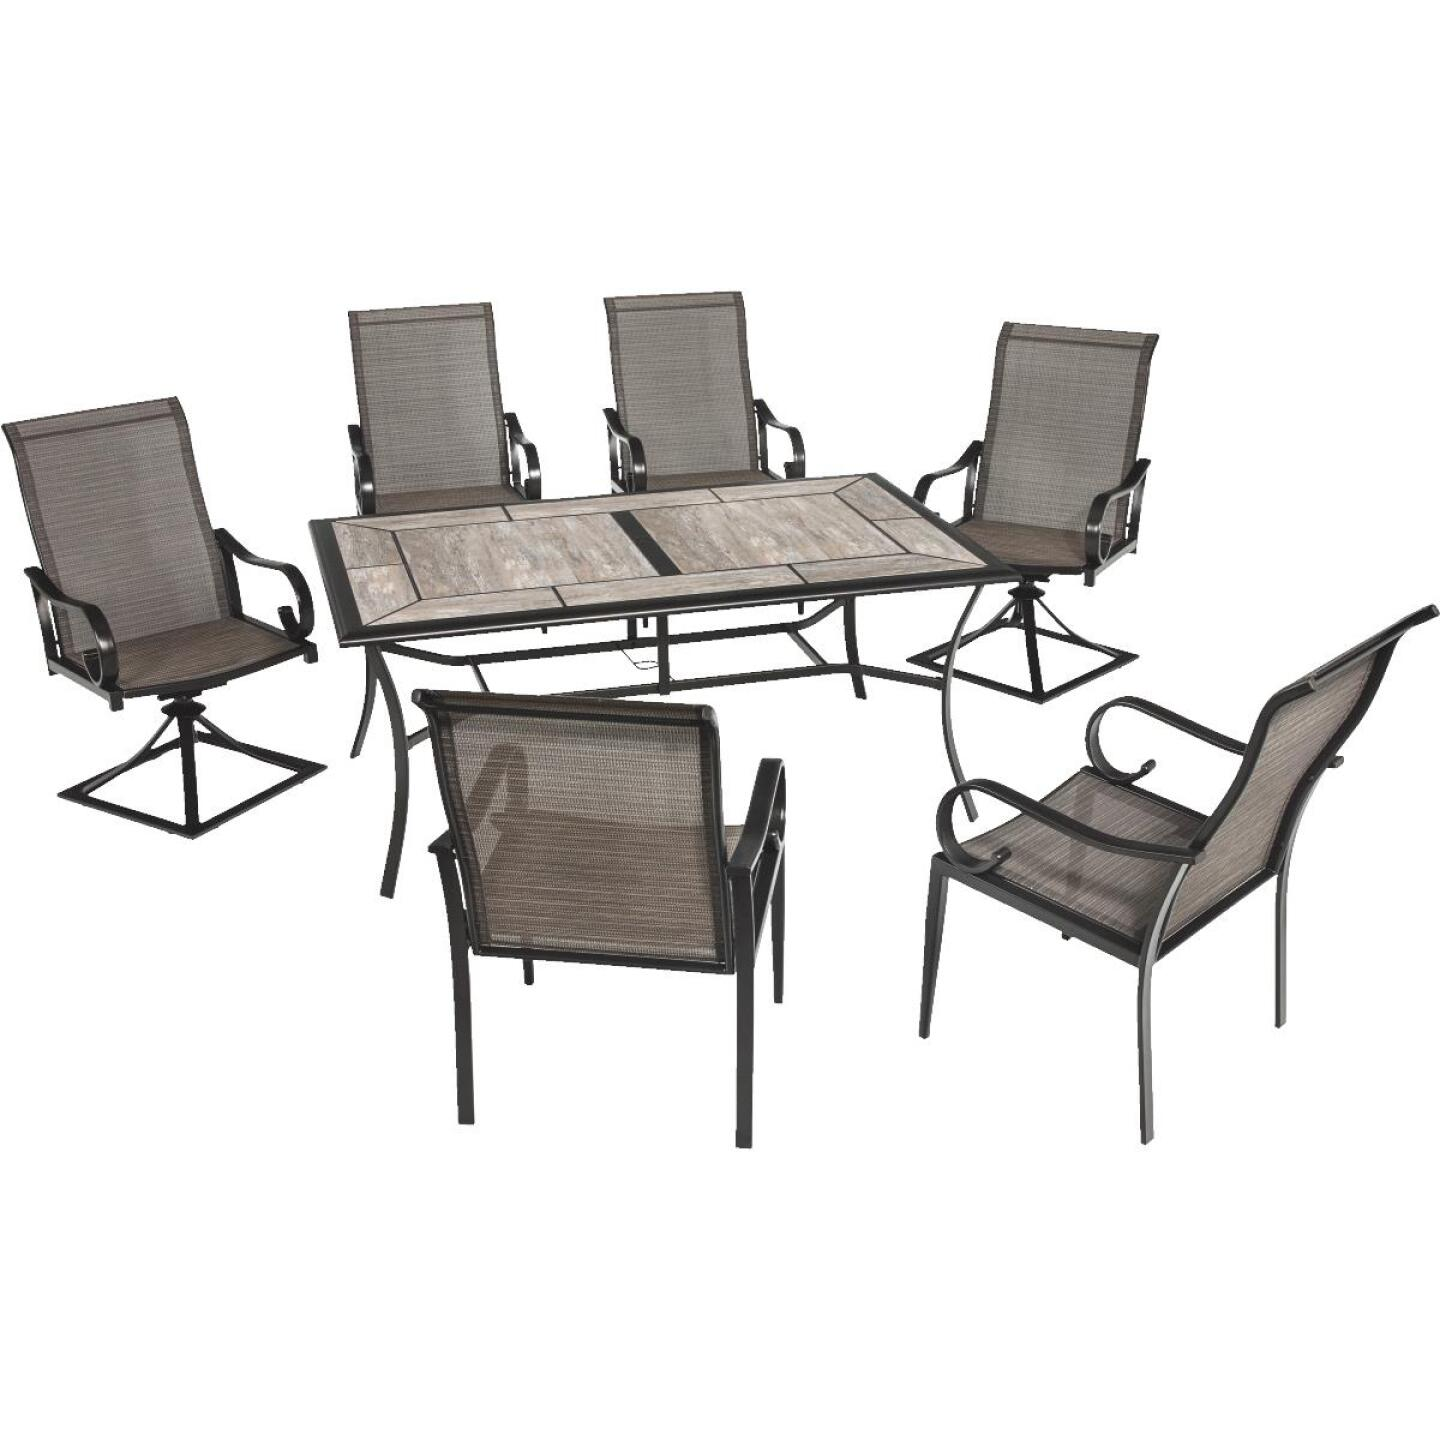 Outdoor Expressions Berkshire 7-Piece Dining Set Image 148